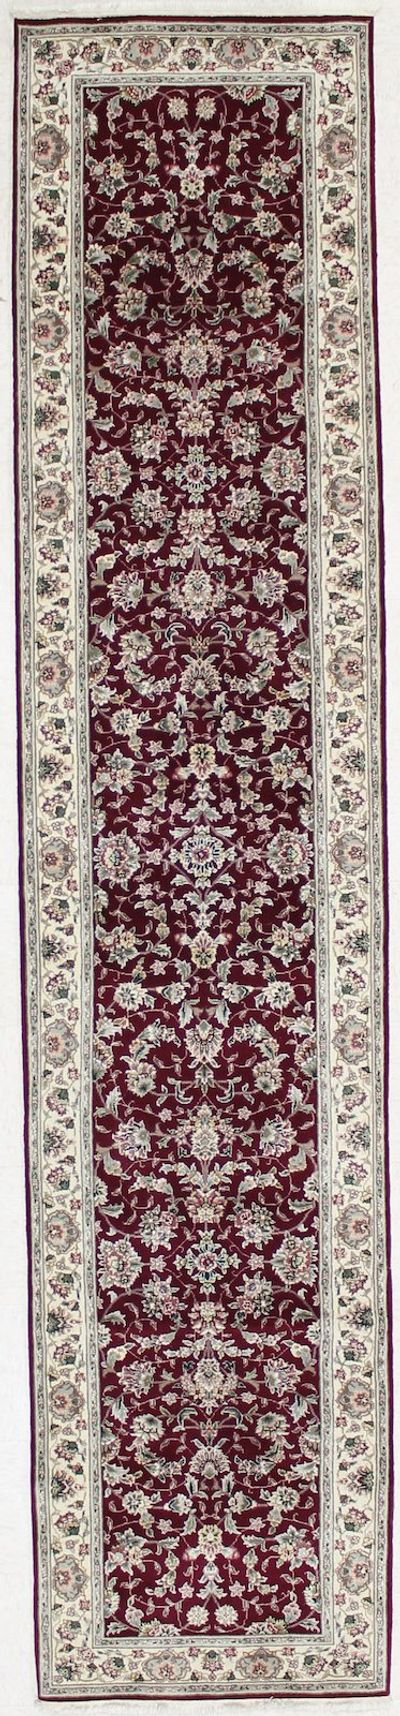 BURGUNDY Royal Flower Rug #1756 • 2′7″ x 12′4″ • 100% Wool